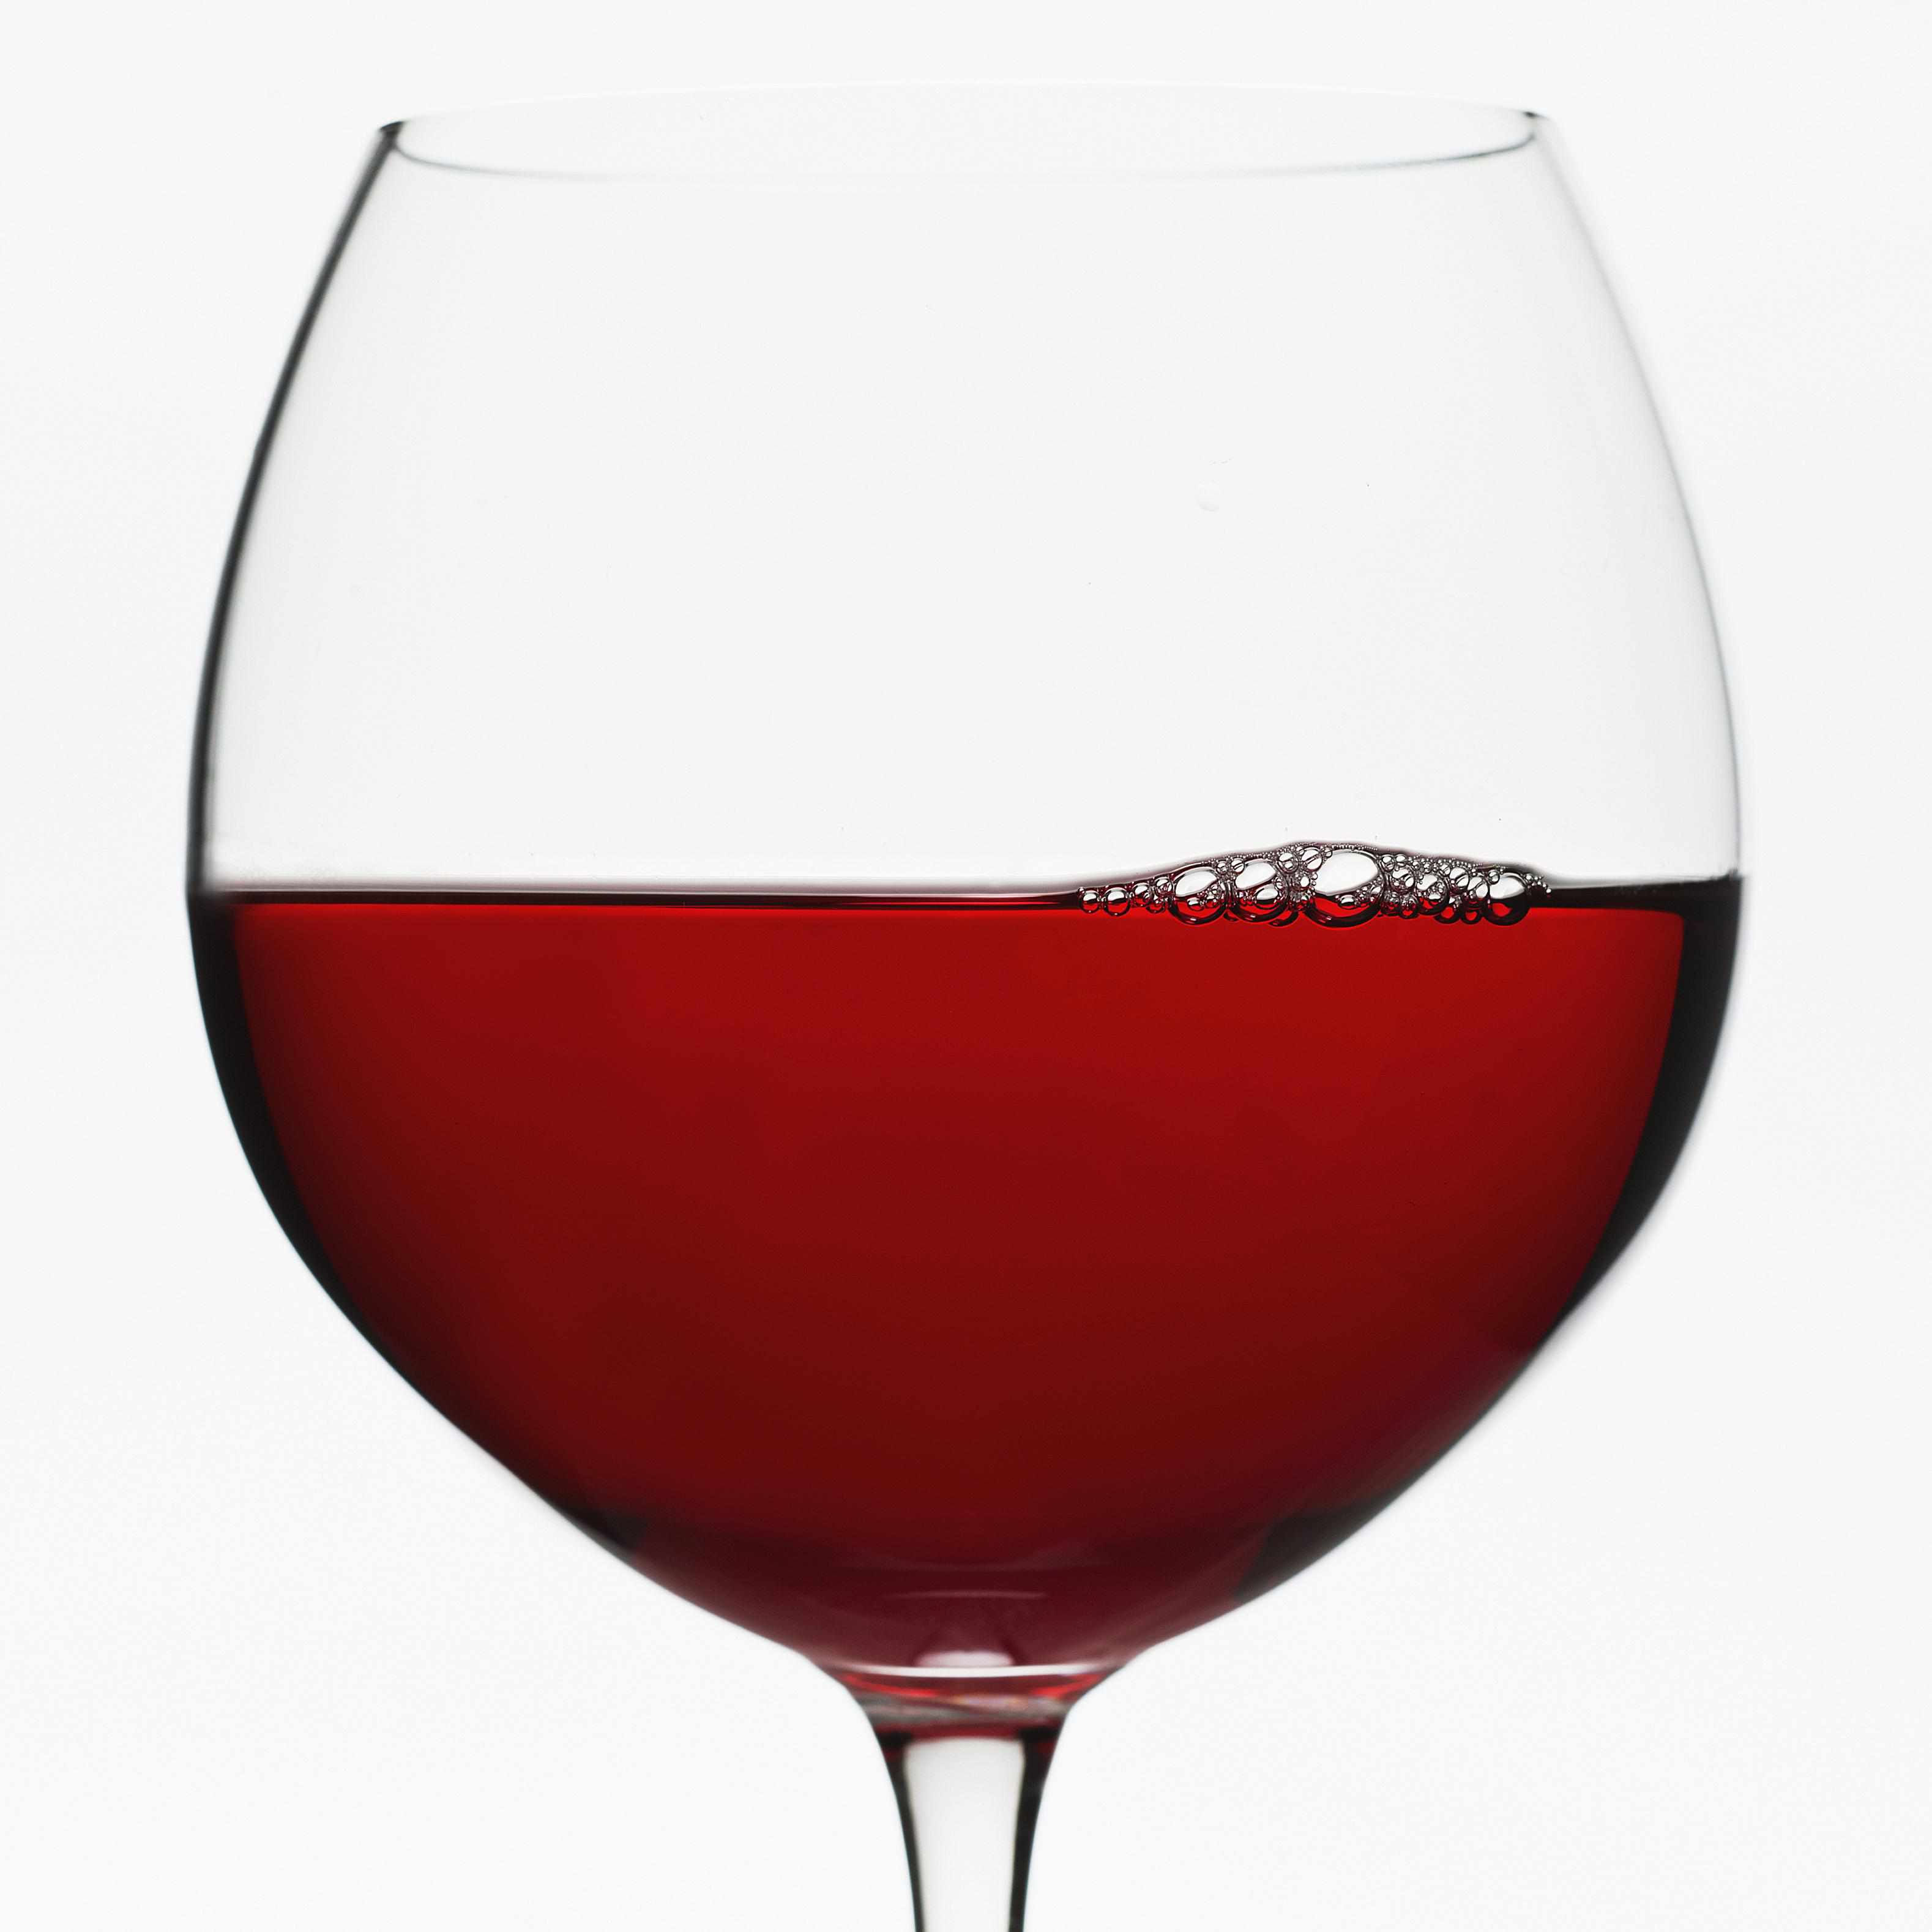 A pH indicator can be used to make water appear to change into wine or blood.